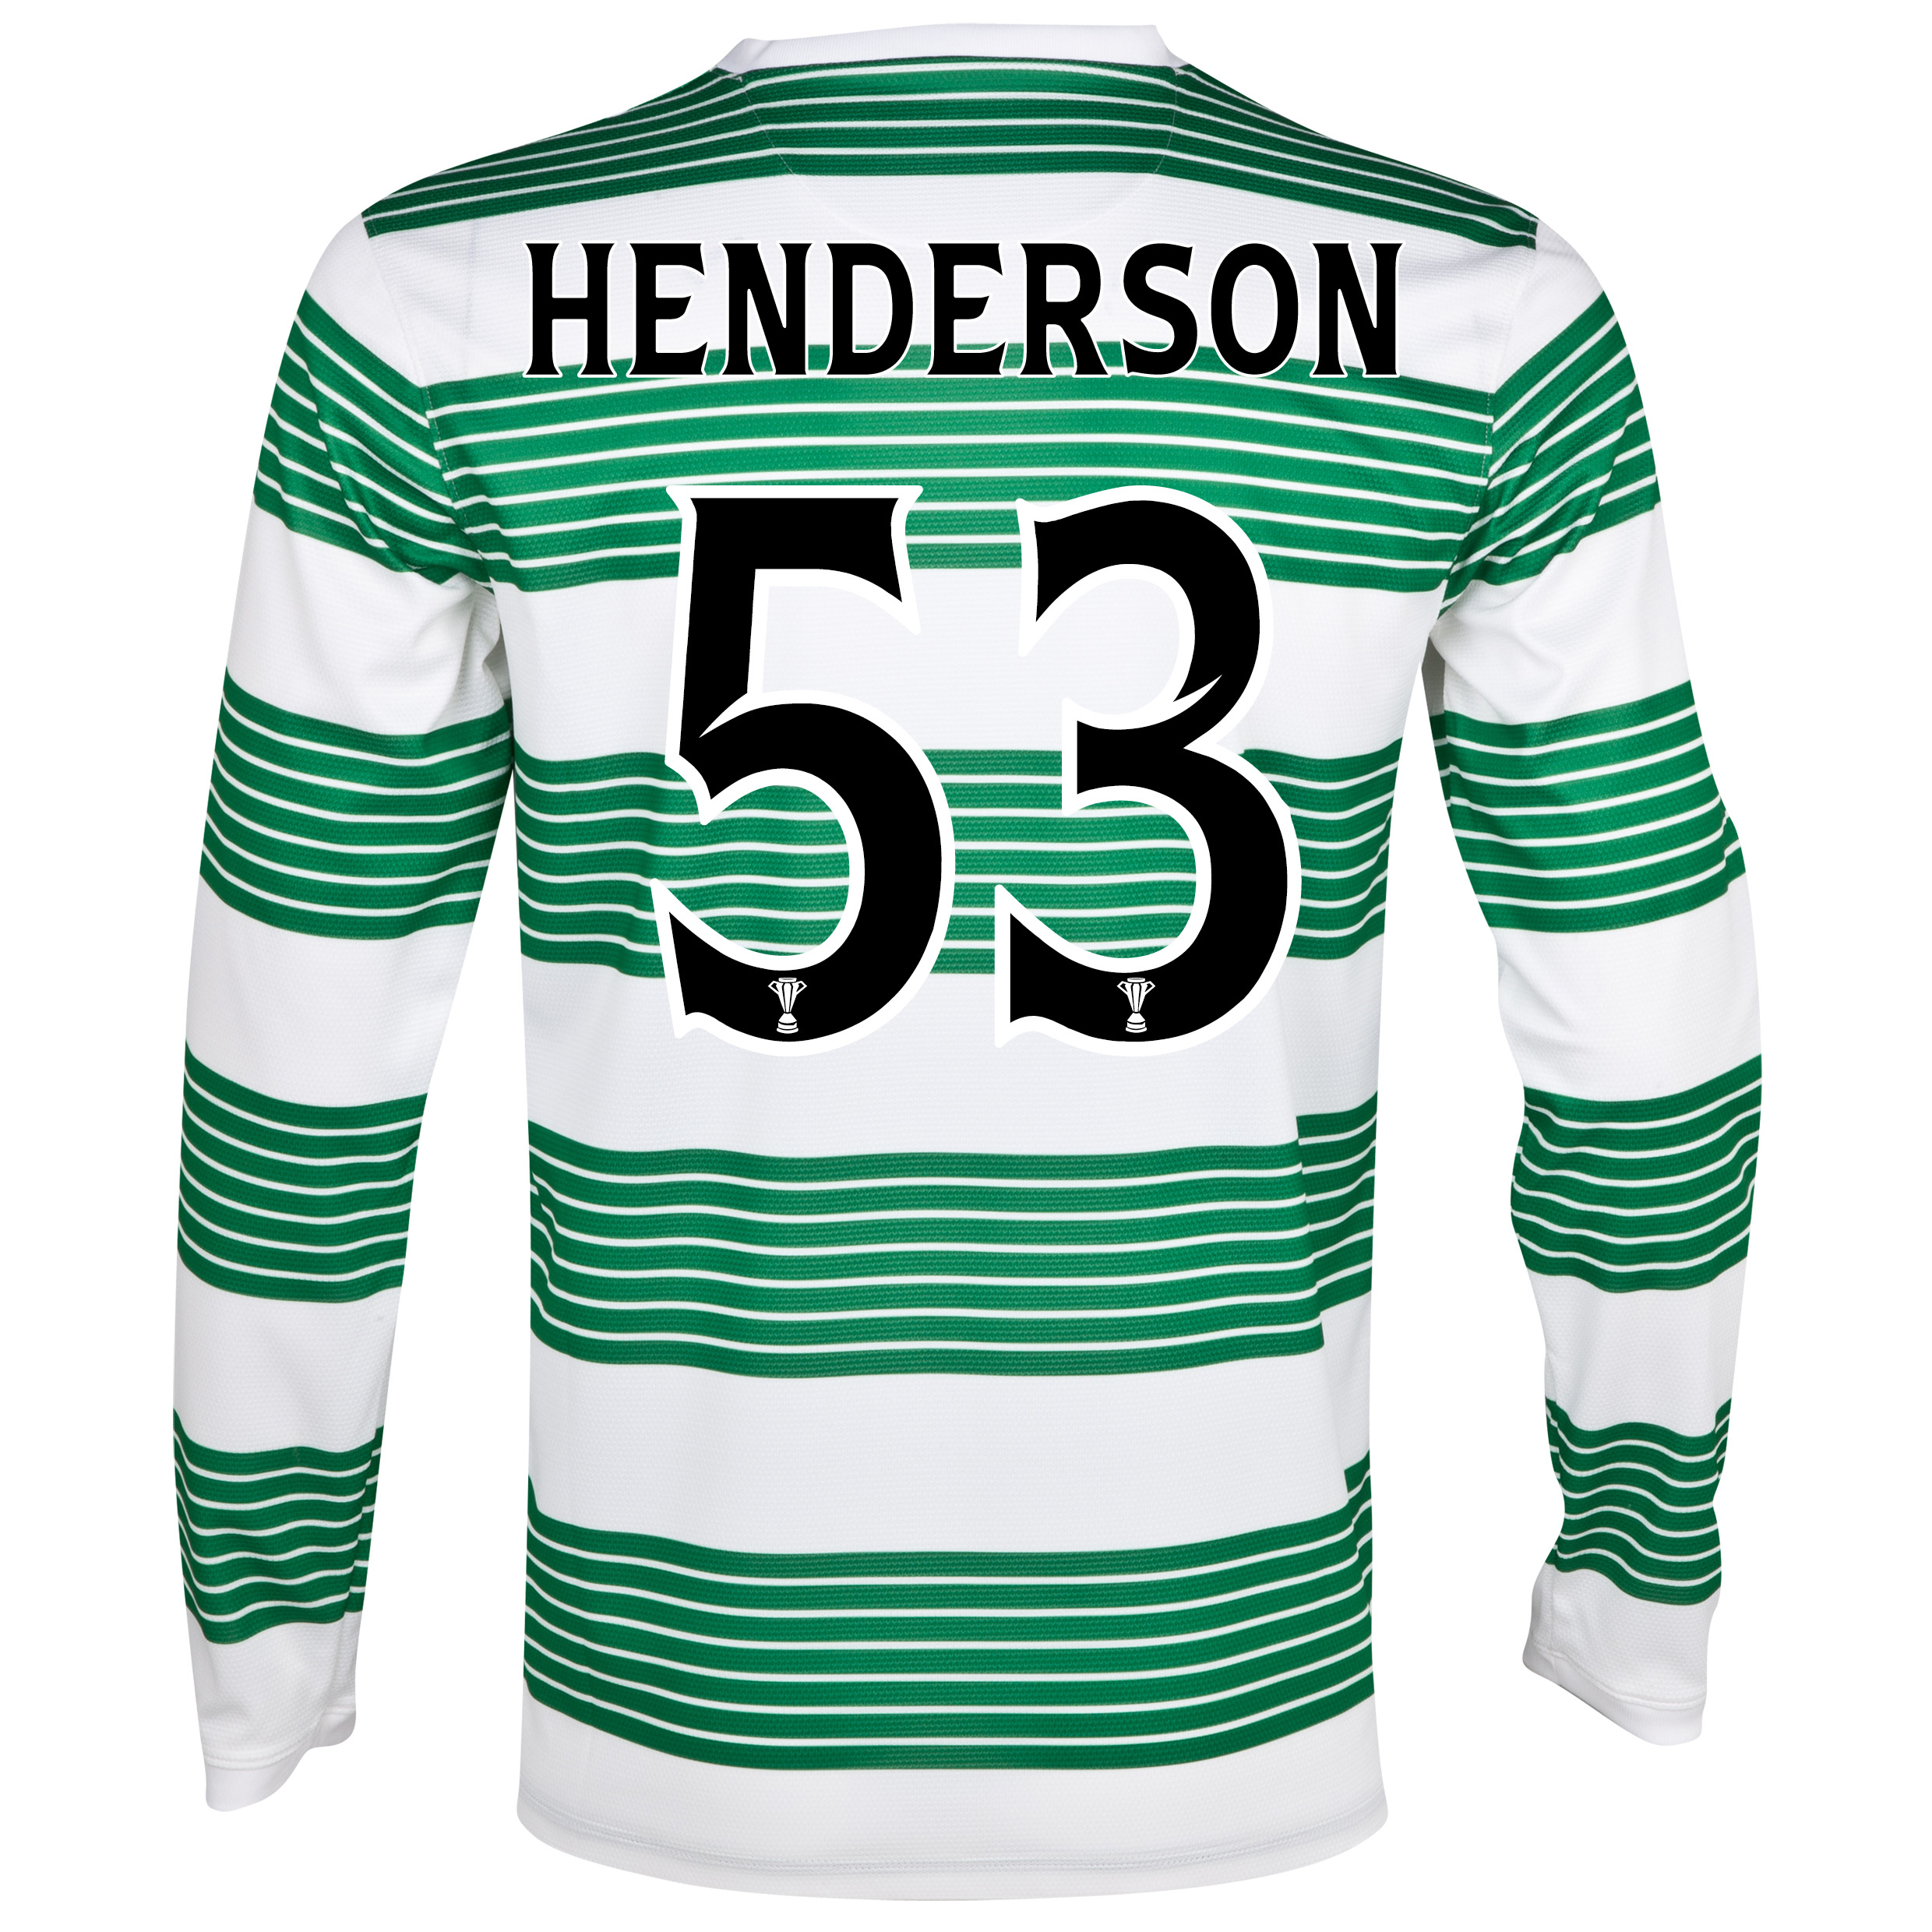 Celtic Home Shirt 2013/15 - L/S- With Sponsor with Henderson 53 printing